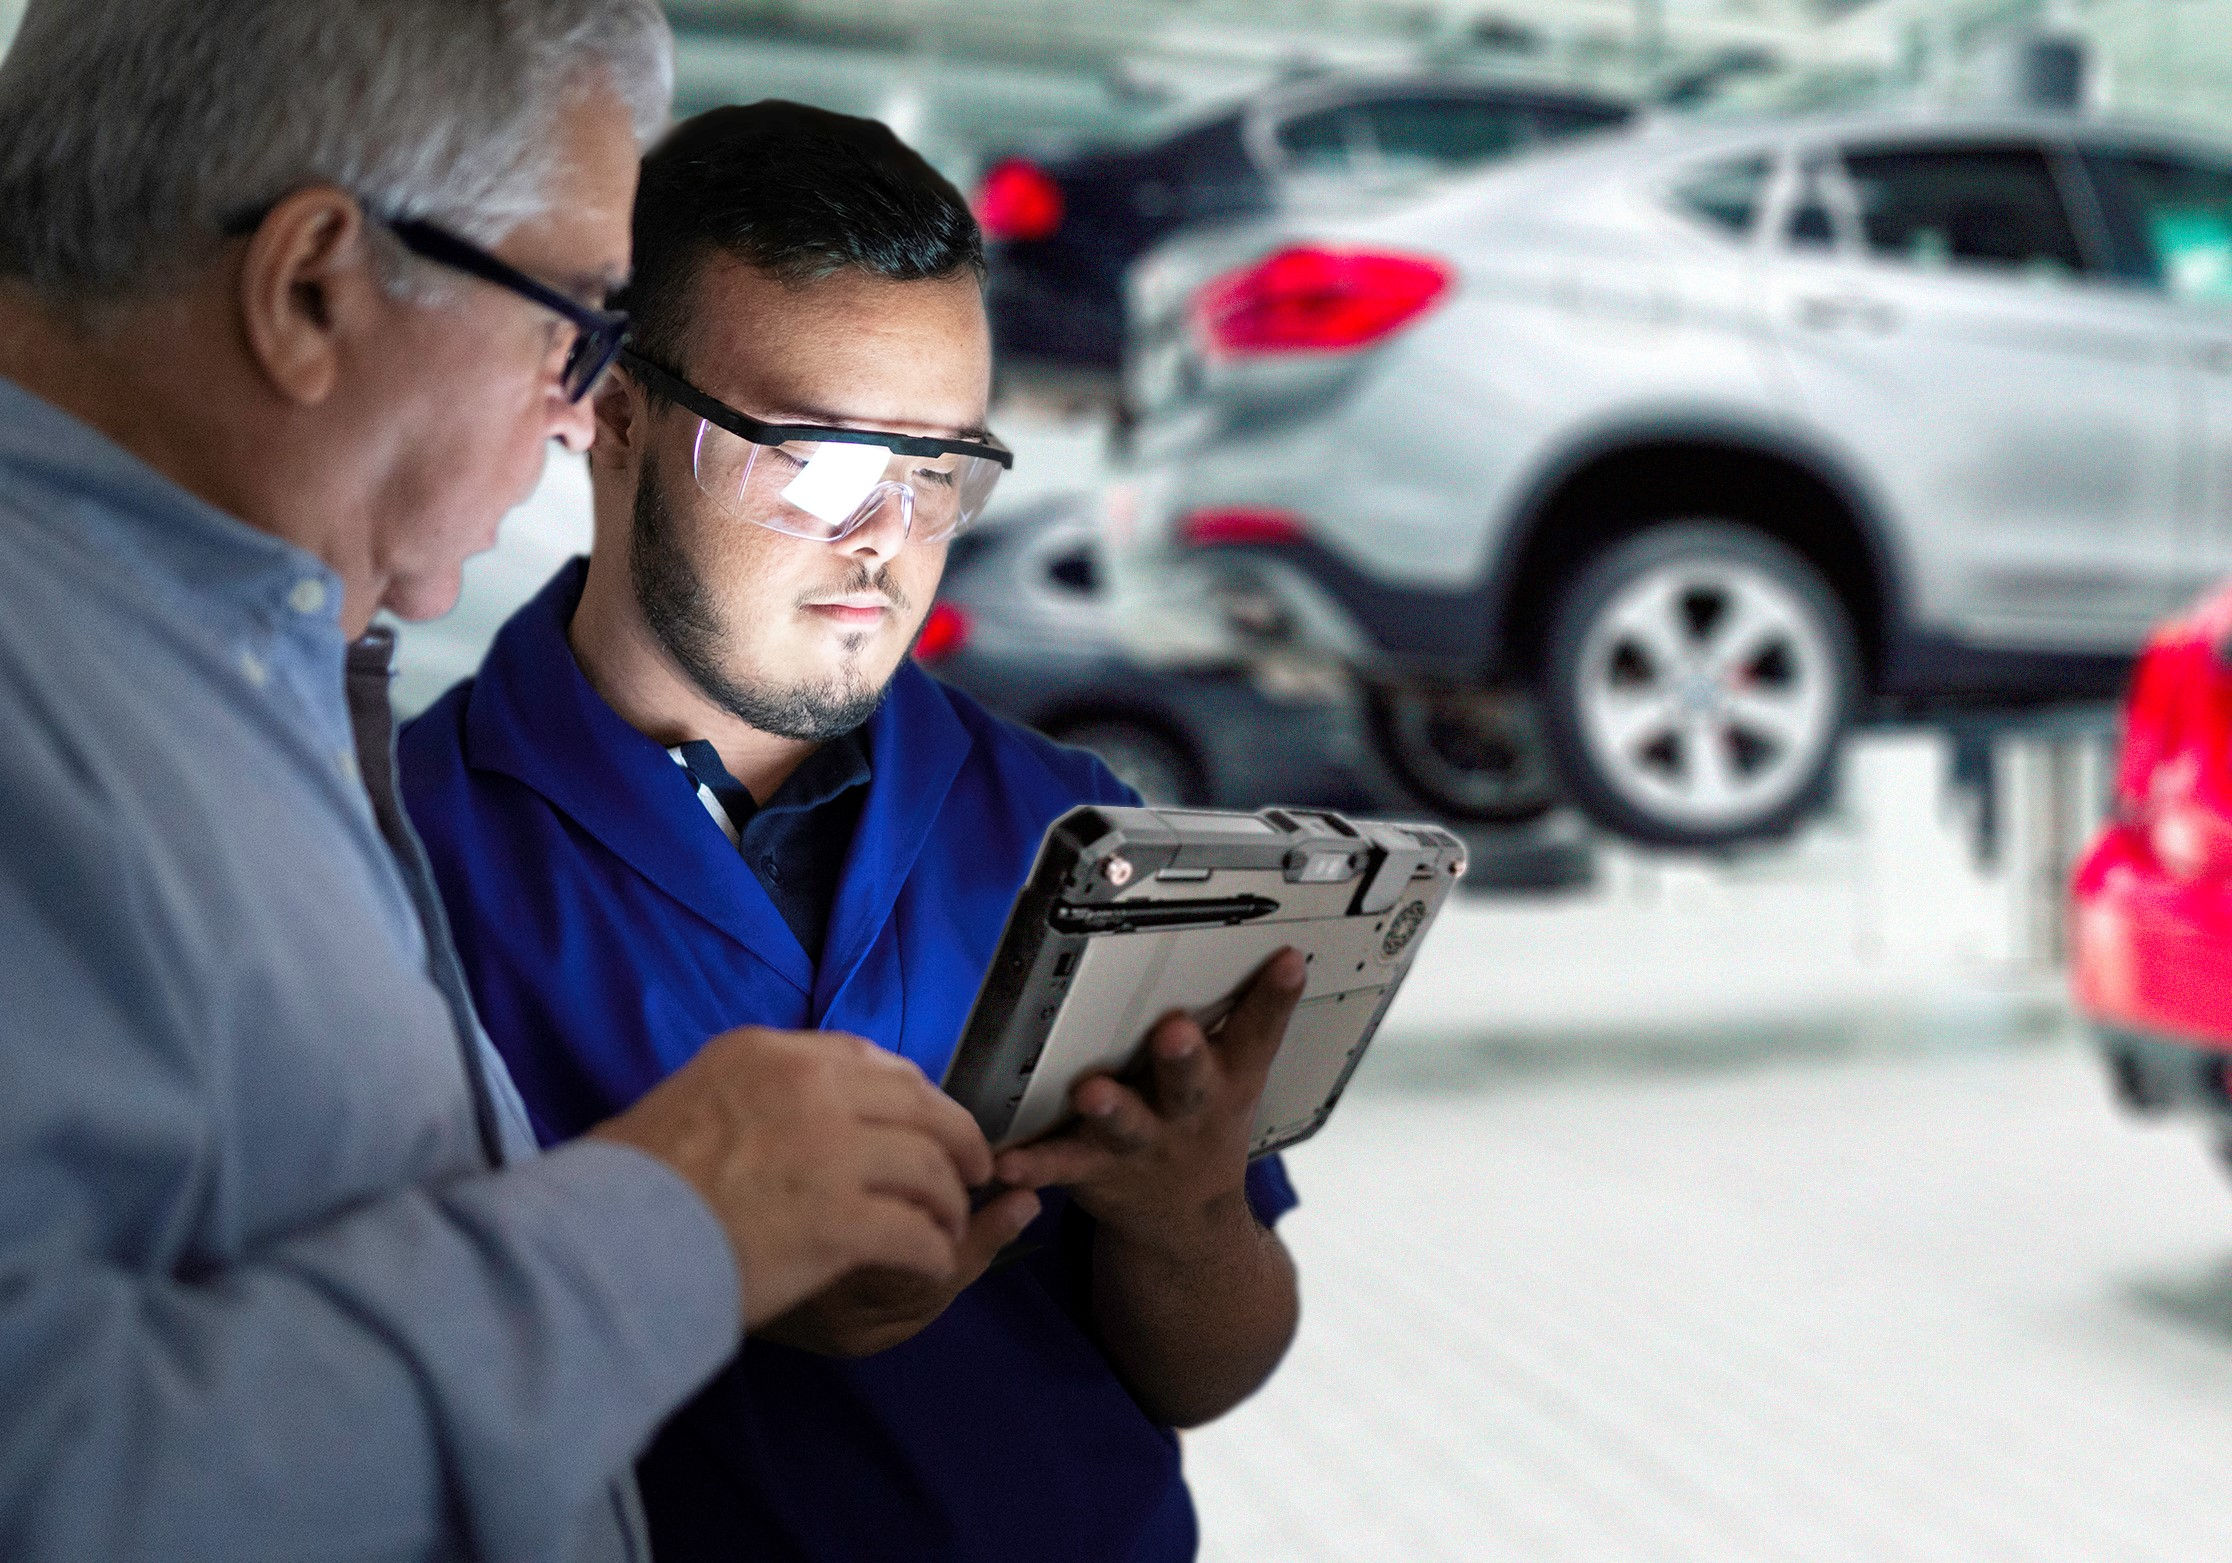 Getac has been selected by BMW Group to supply rugged devices and solutions across its global network for R&D, production, logistics and diagnostics (source Getac)